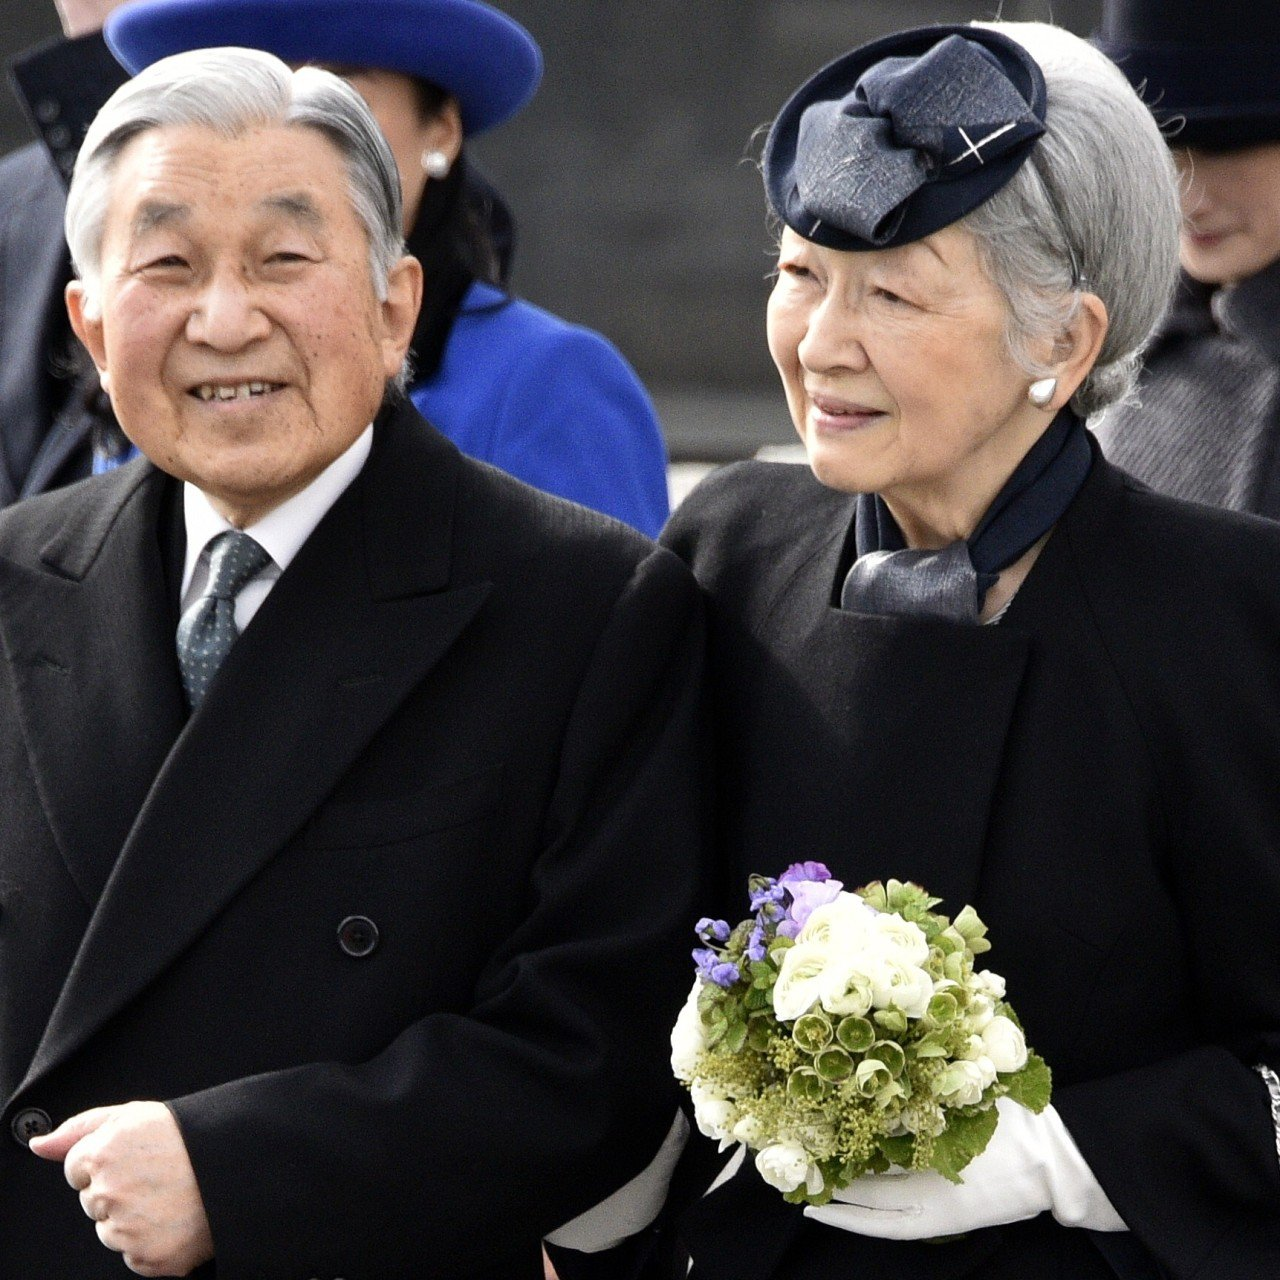 Japan's Emperor Akihito abdicates, and Crown Prince Naruhito